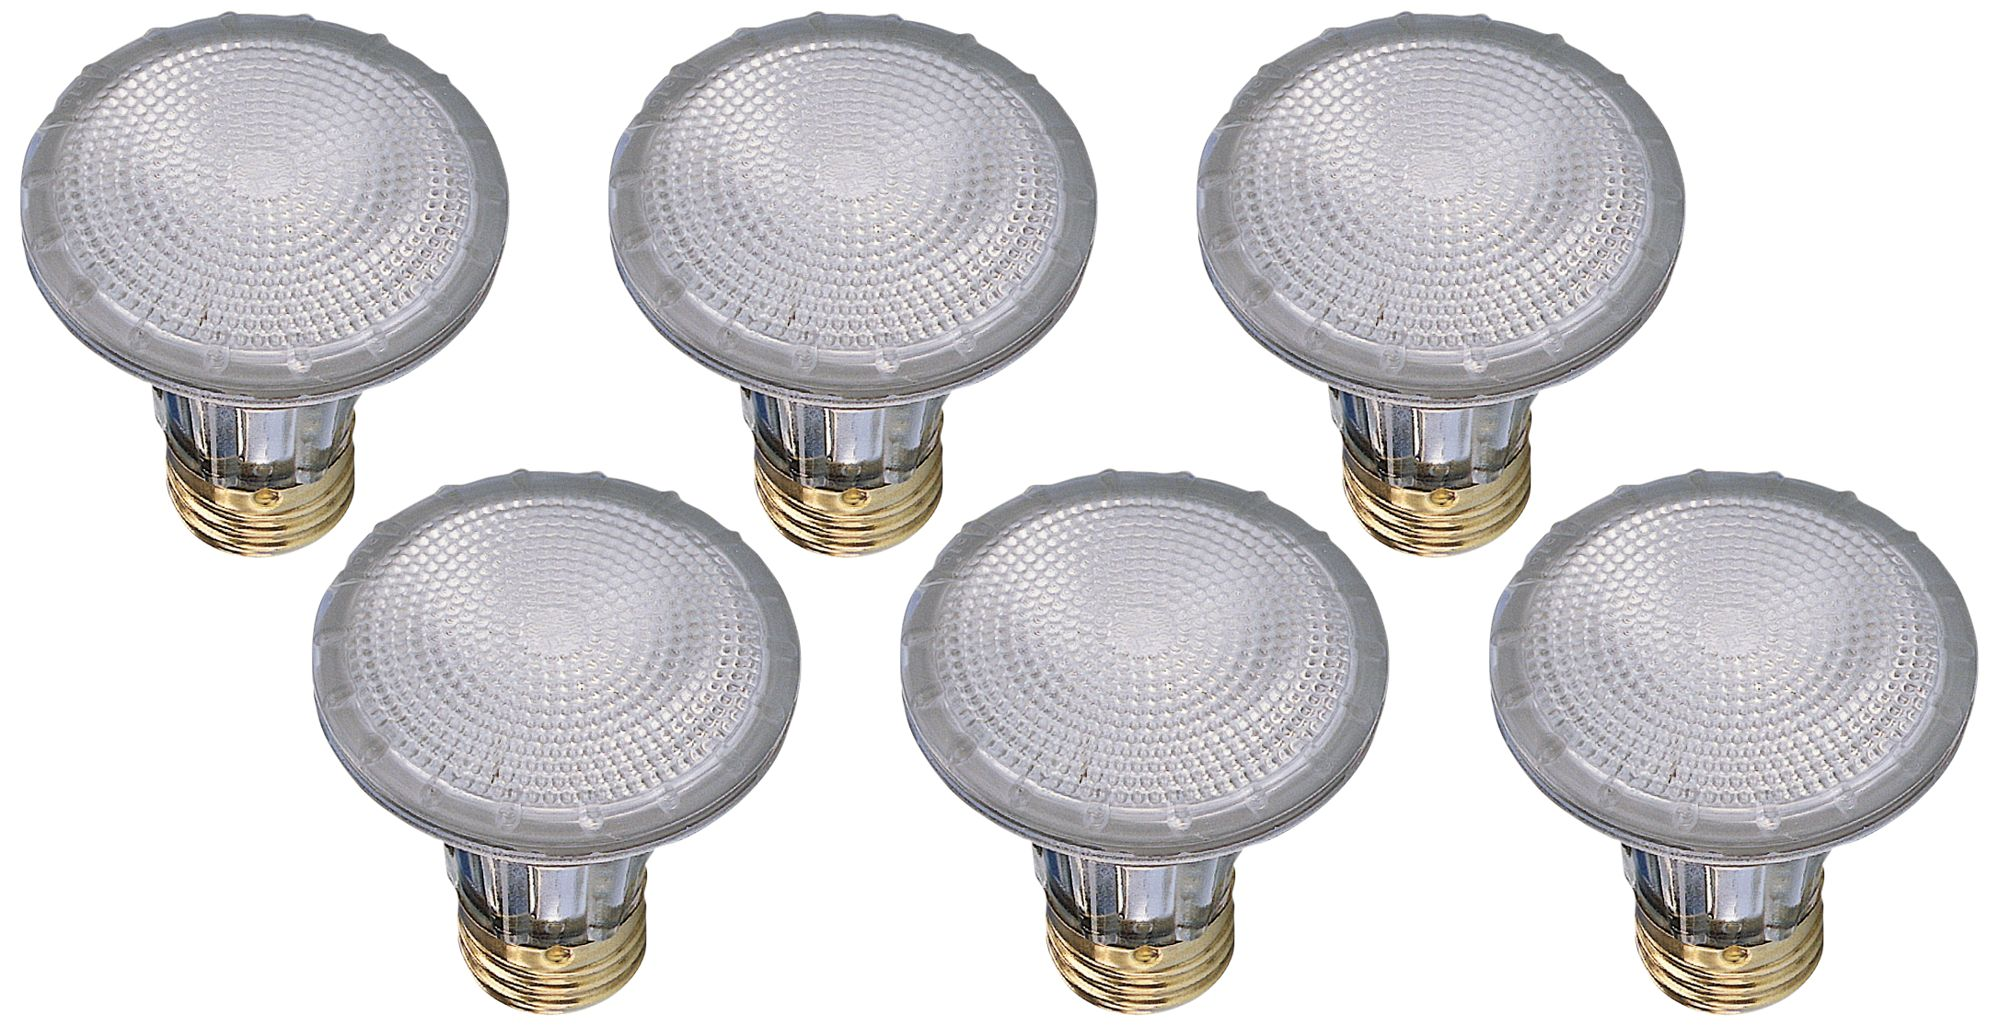 Bulbs Light 60 Fan Pack A15 Sylvania Watt 2 Ceiling